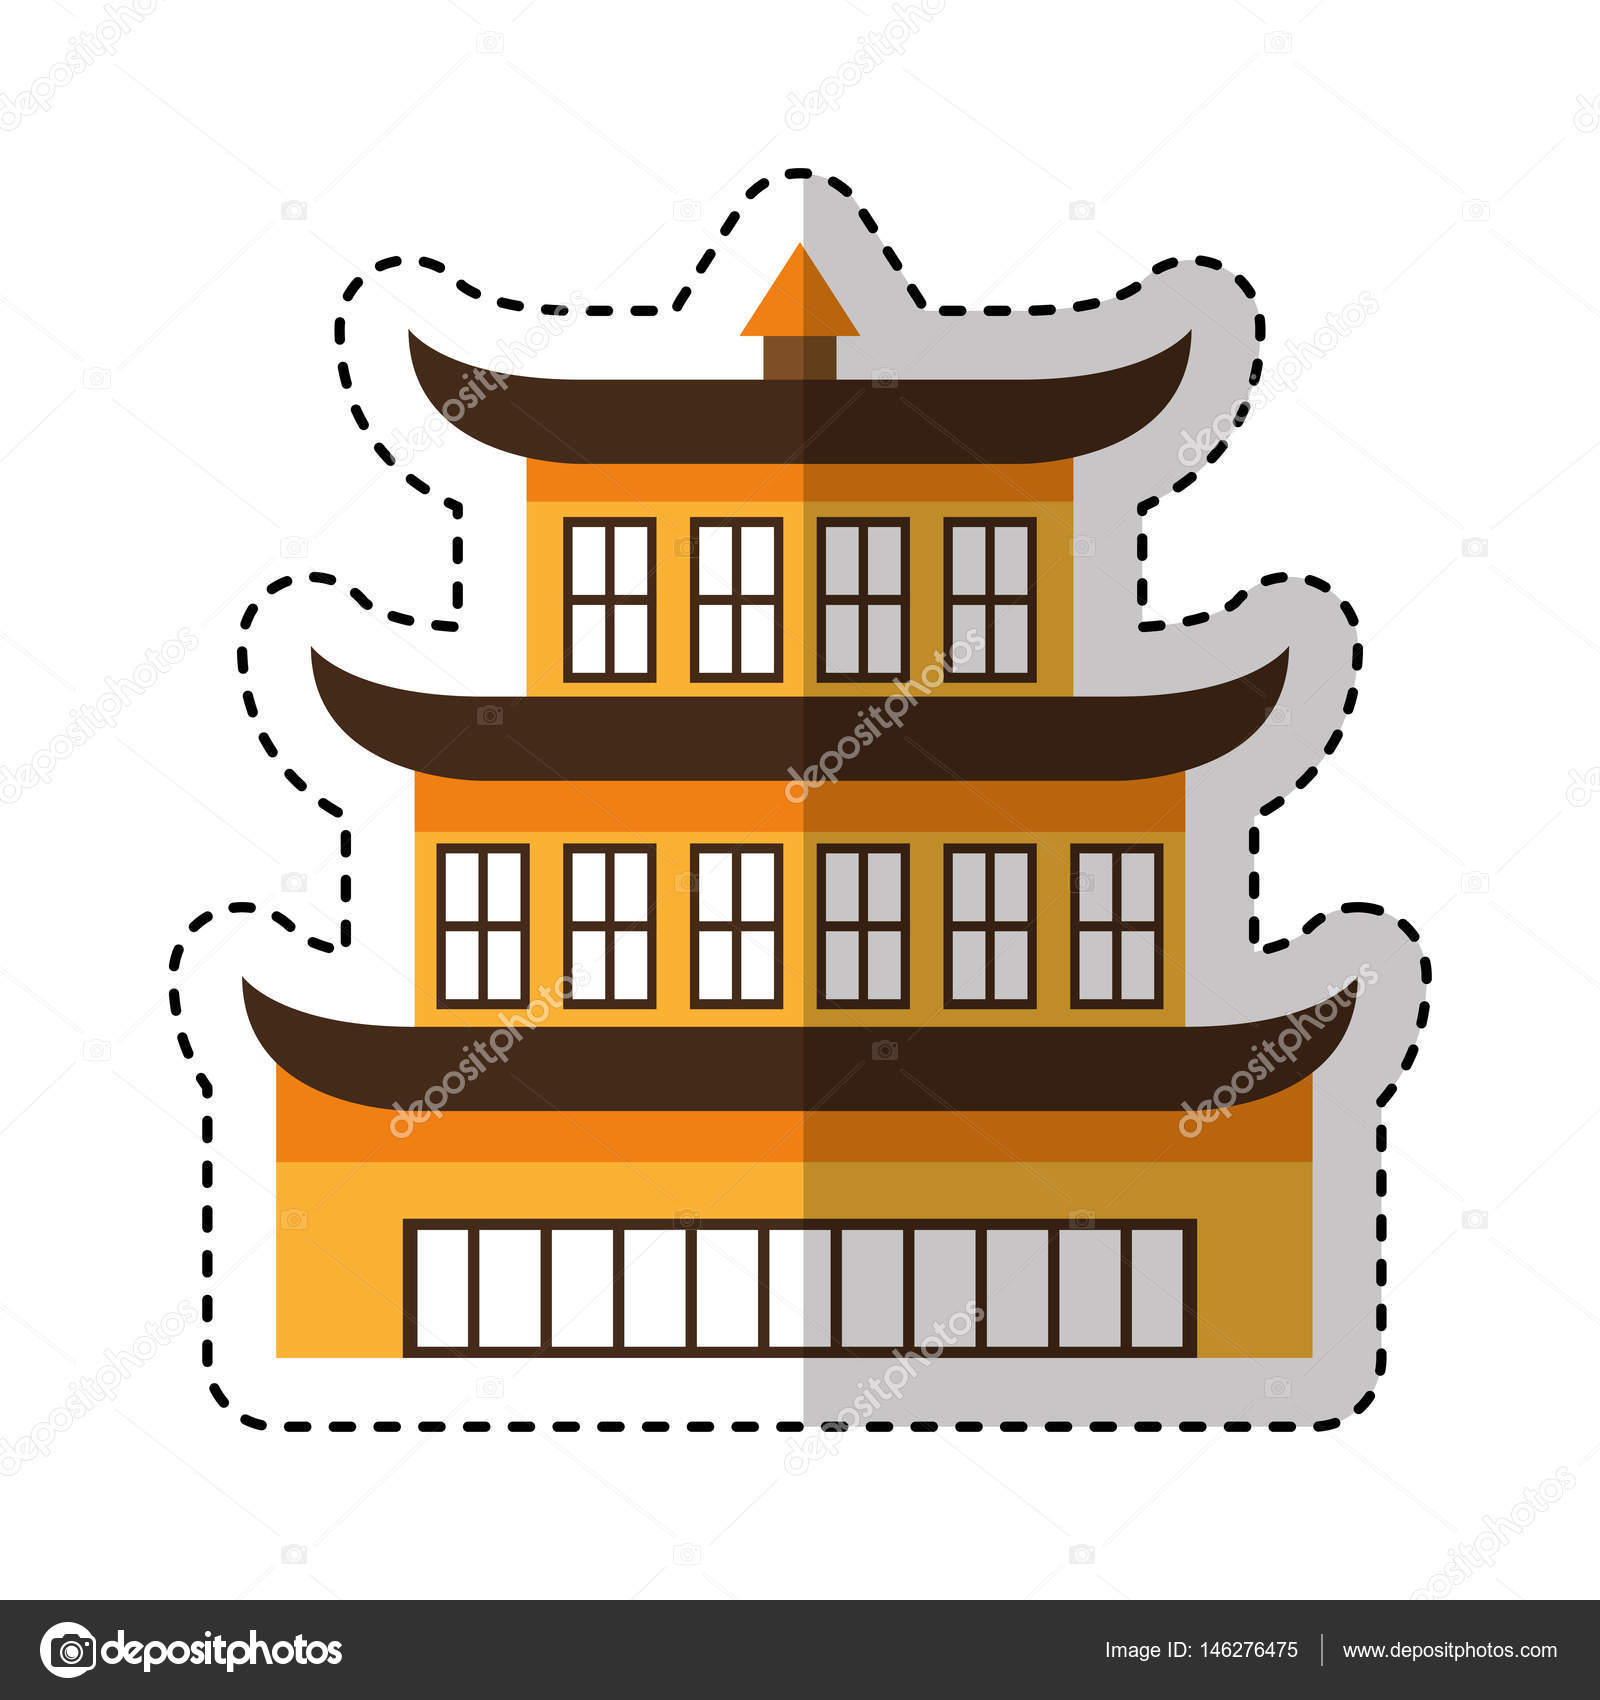 asian building castle icon — stock vector © yupiramos #146276475